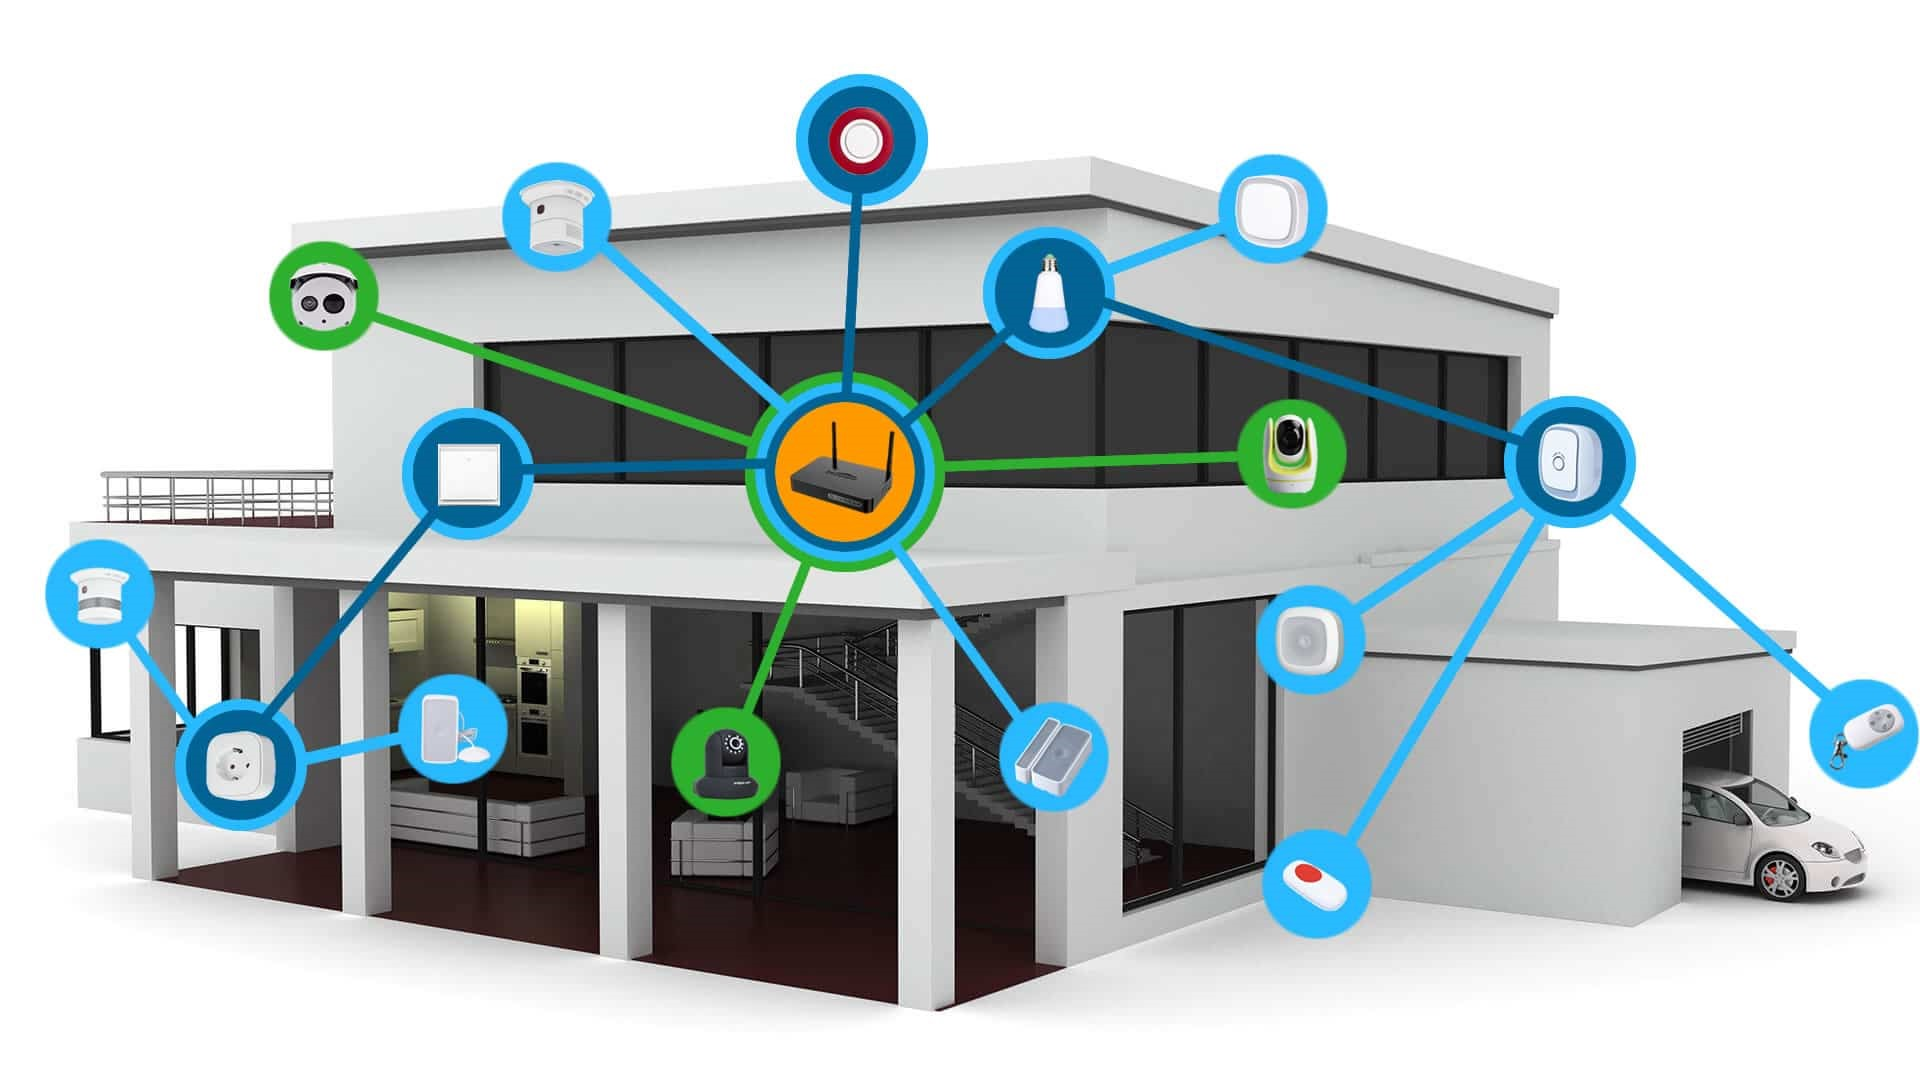 Create The Dream Home You've Always Wanted With Smart Home Automation Systems.